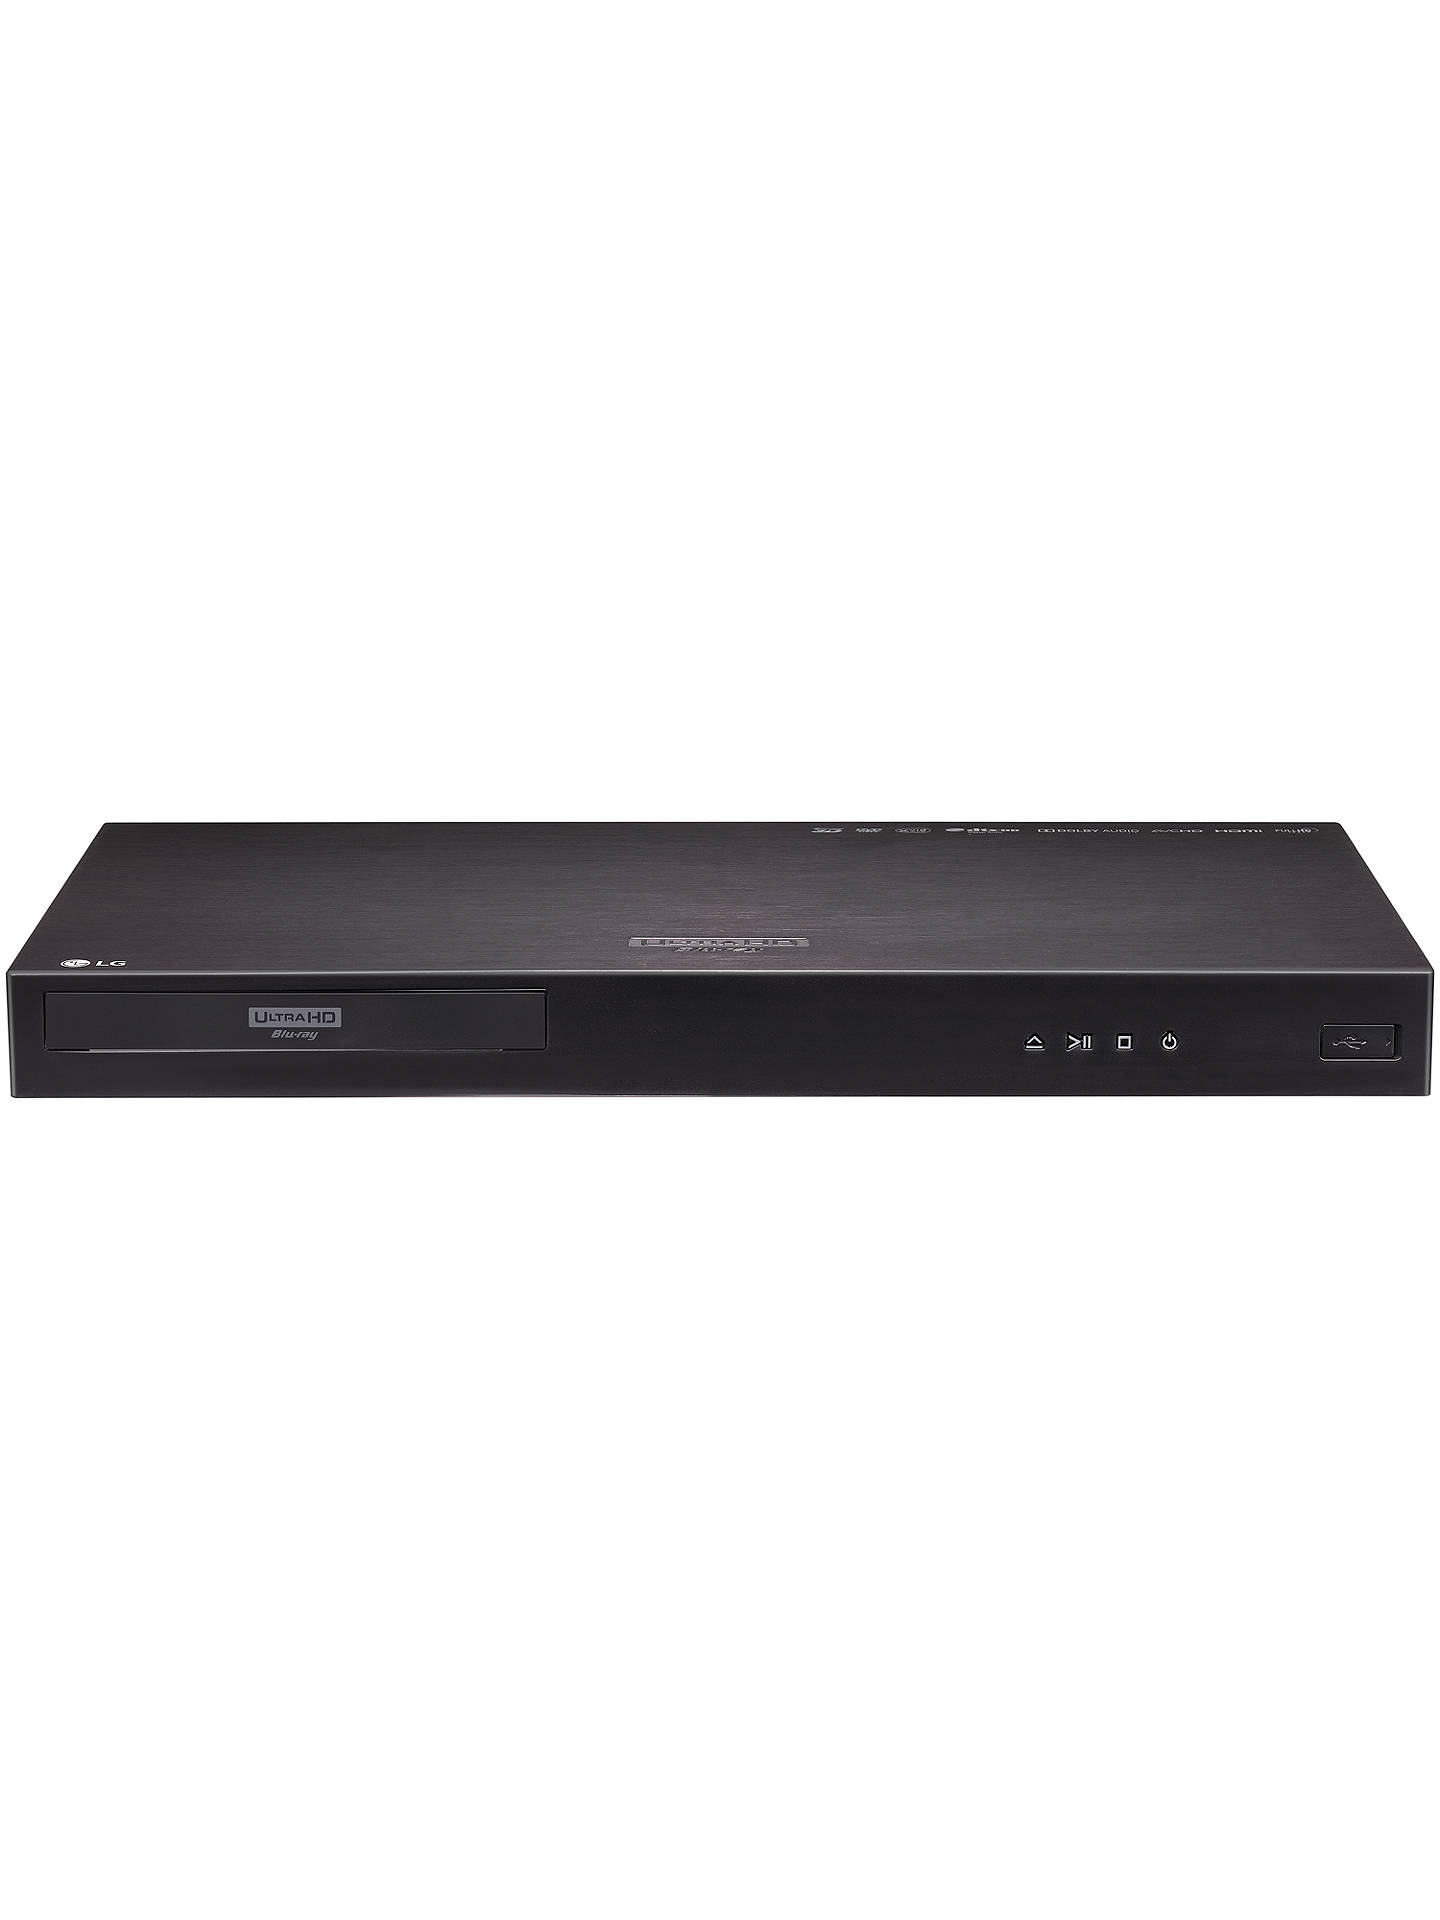 BuyLG UP970 Smart 3D 4K UHD HDR Blu-Ray/DVD Player Online at johnlewis.com